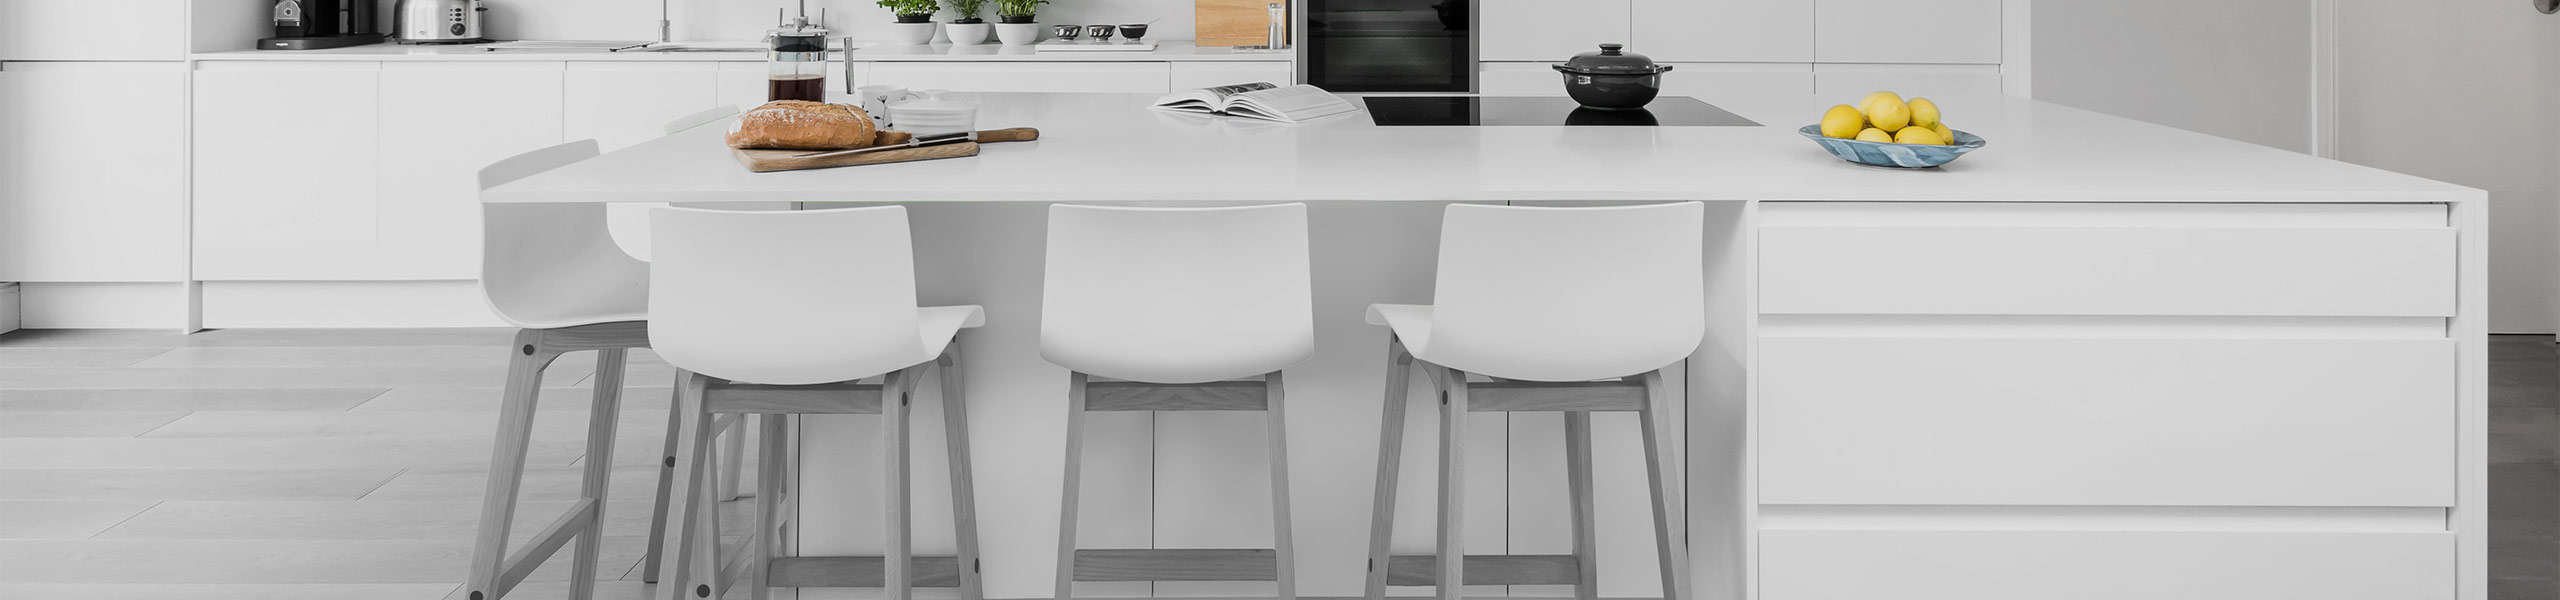 Coast Bar Stool White & Grey Video Banner